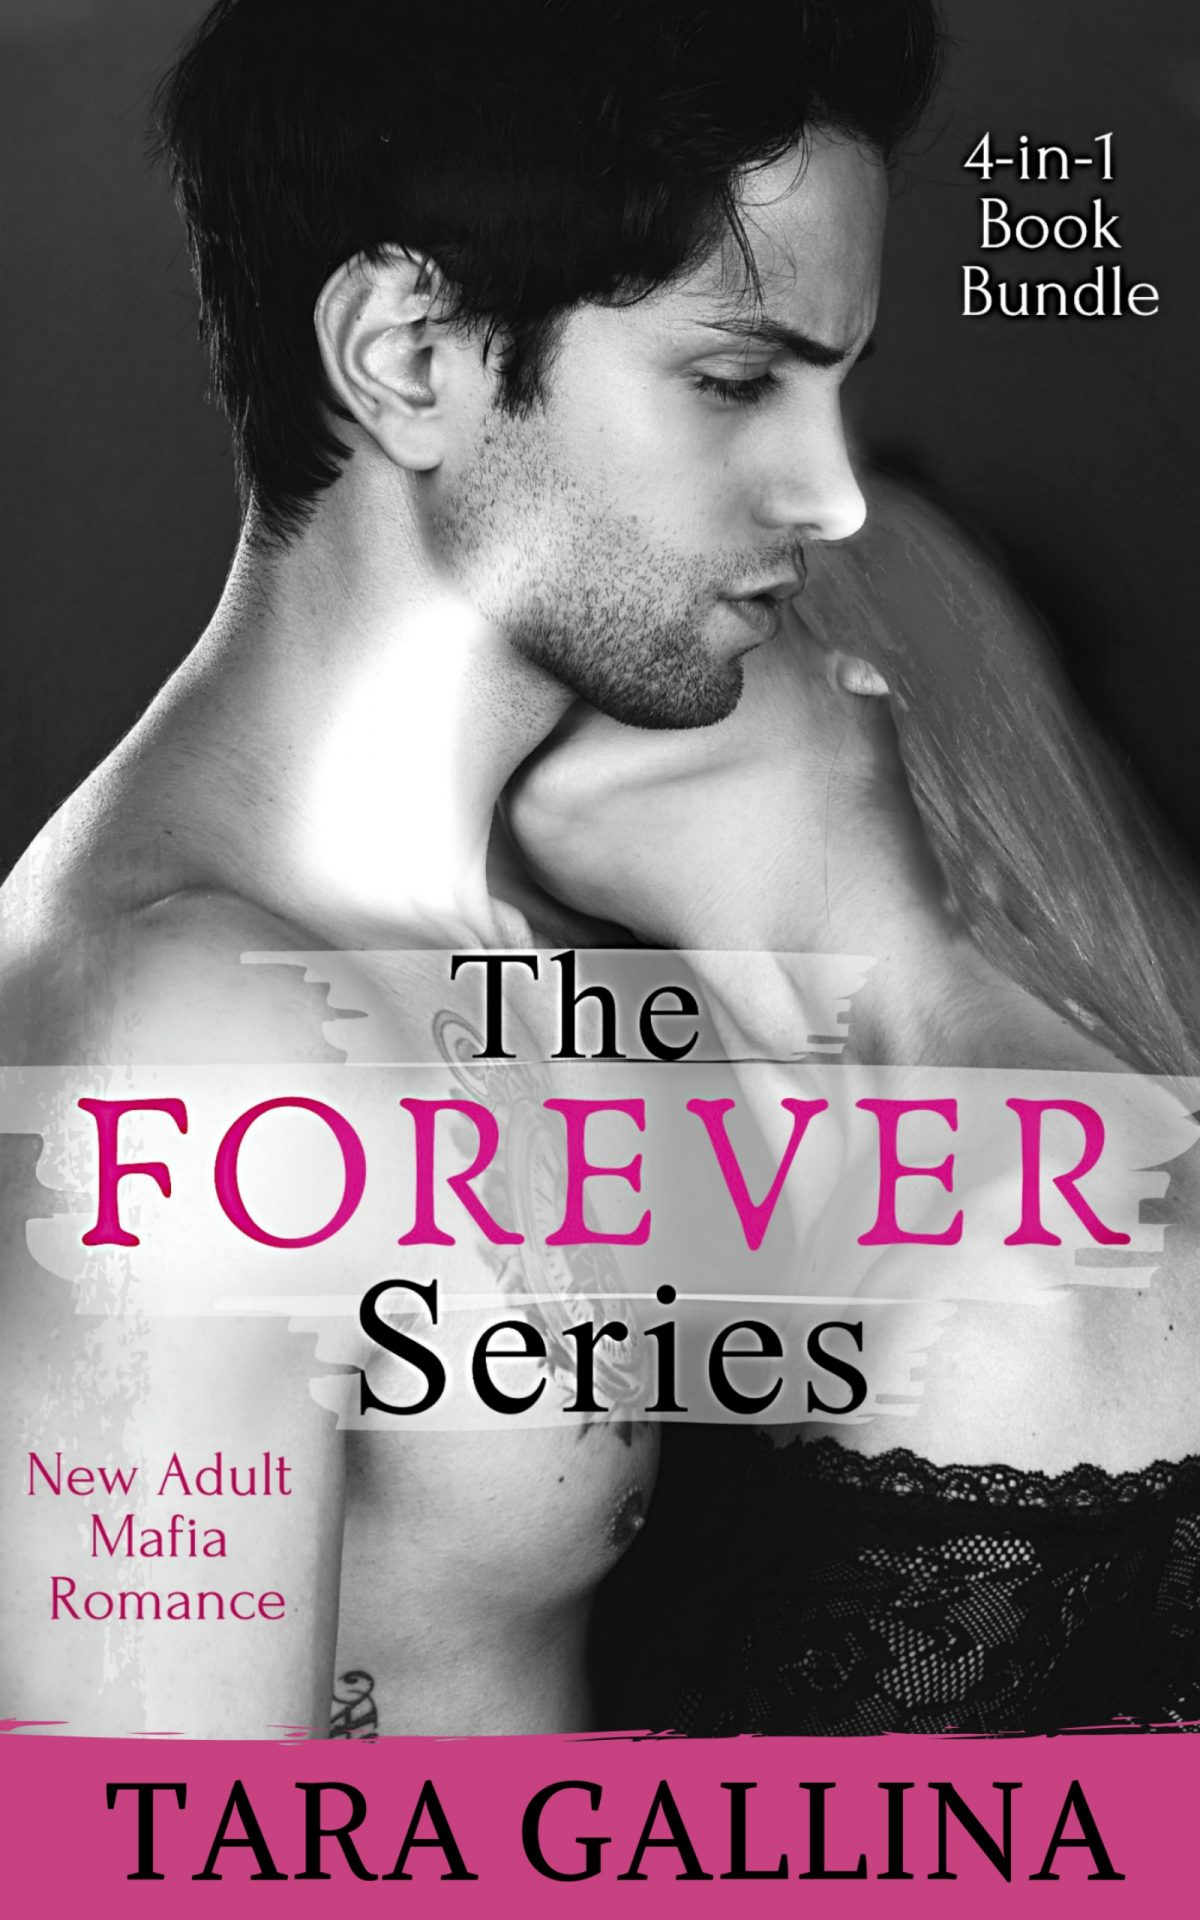 The Forever Series 4-in-1 Book Bundle